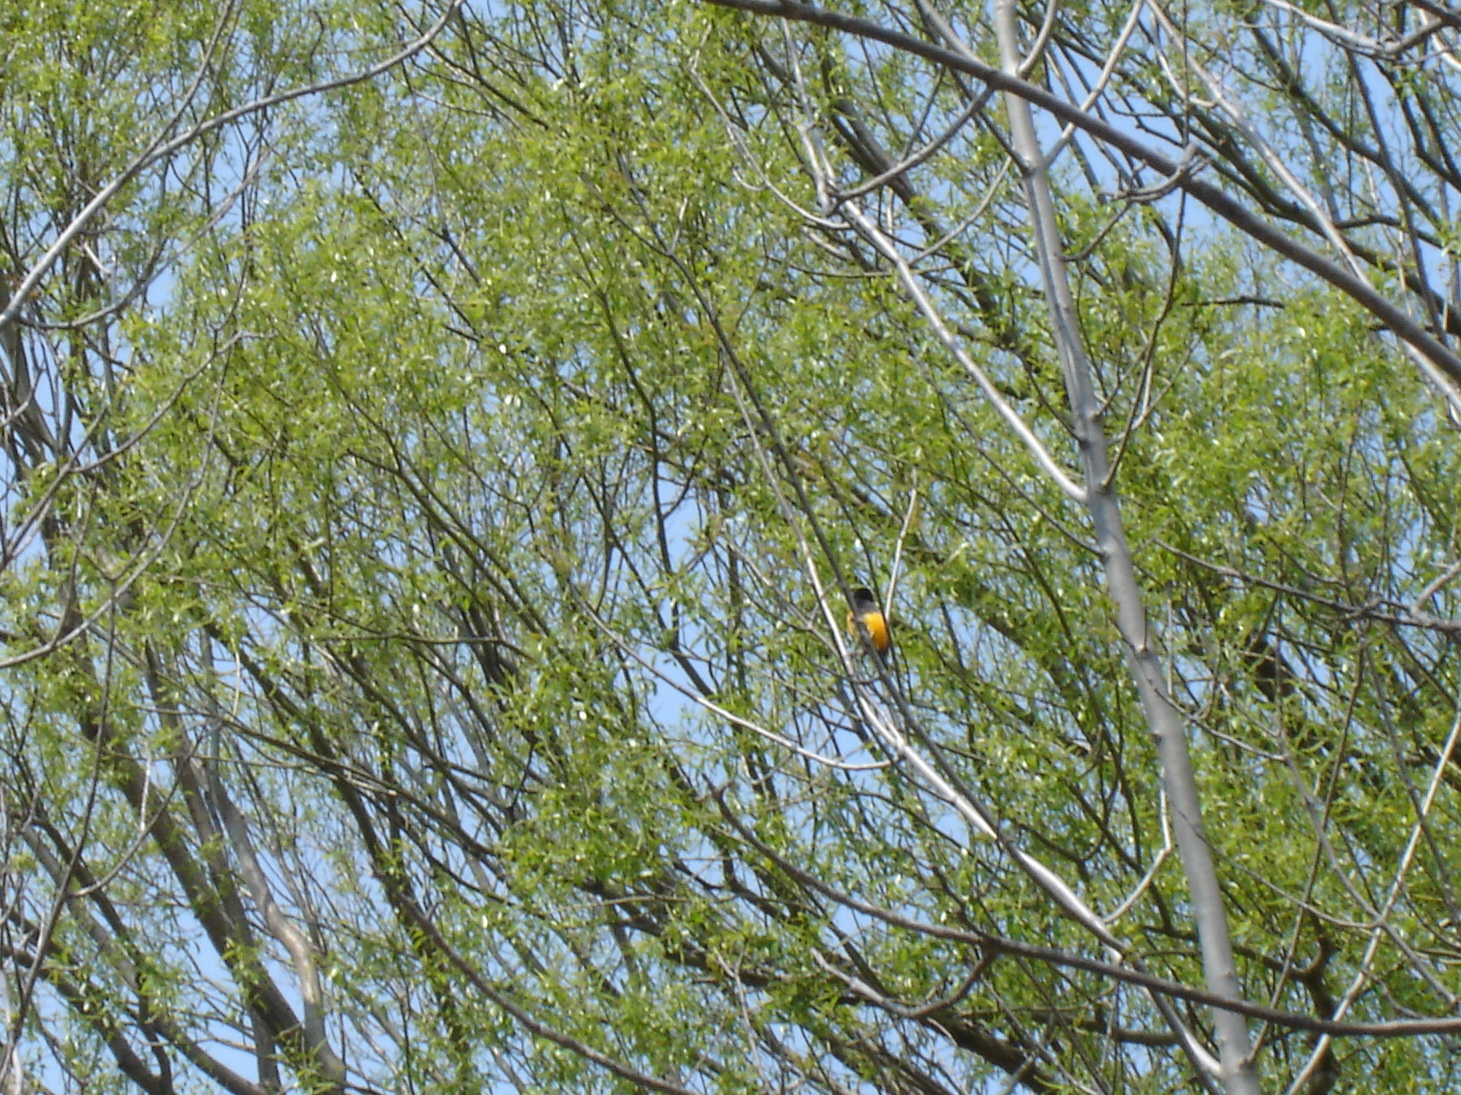 I think this is a Baltimore Oriole